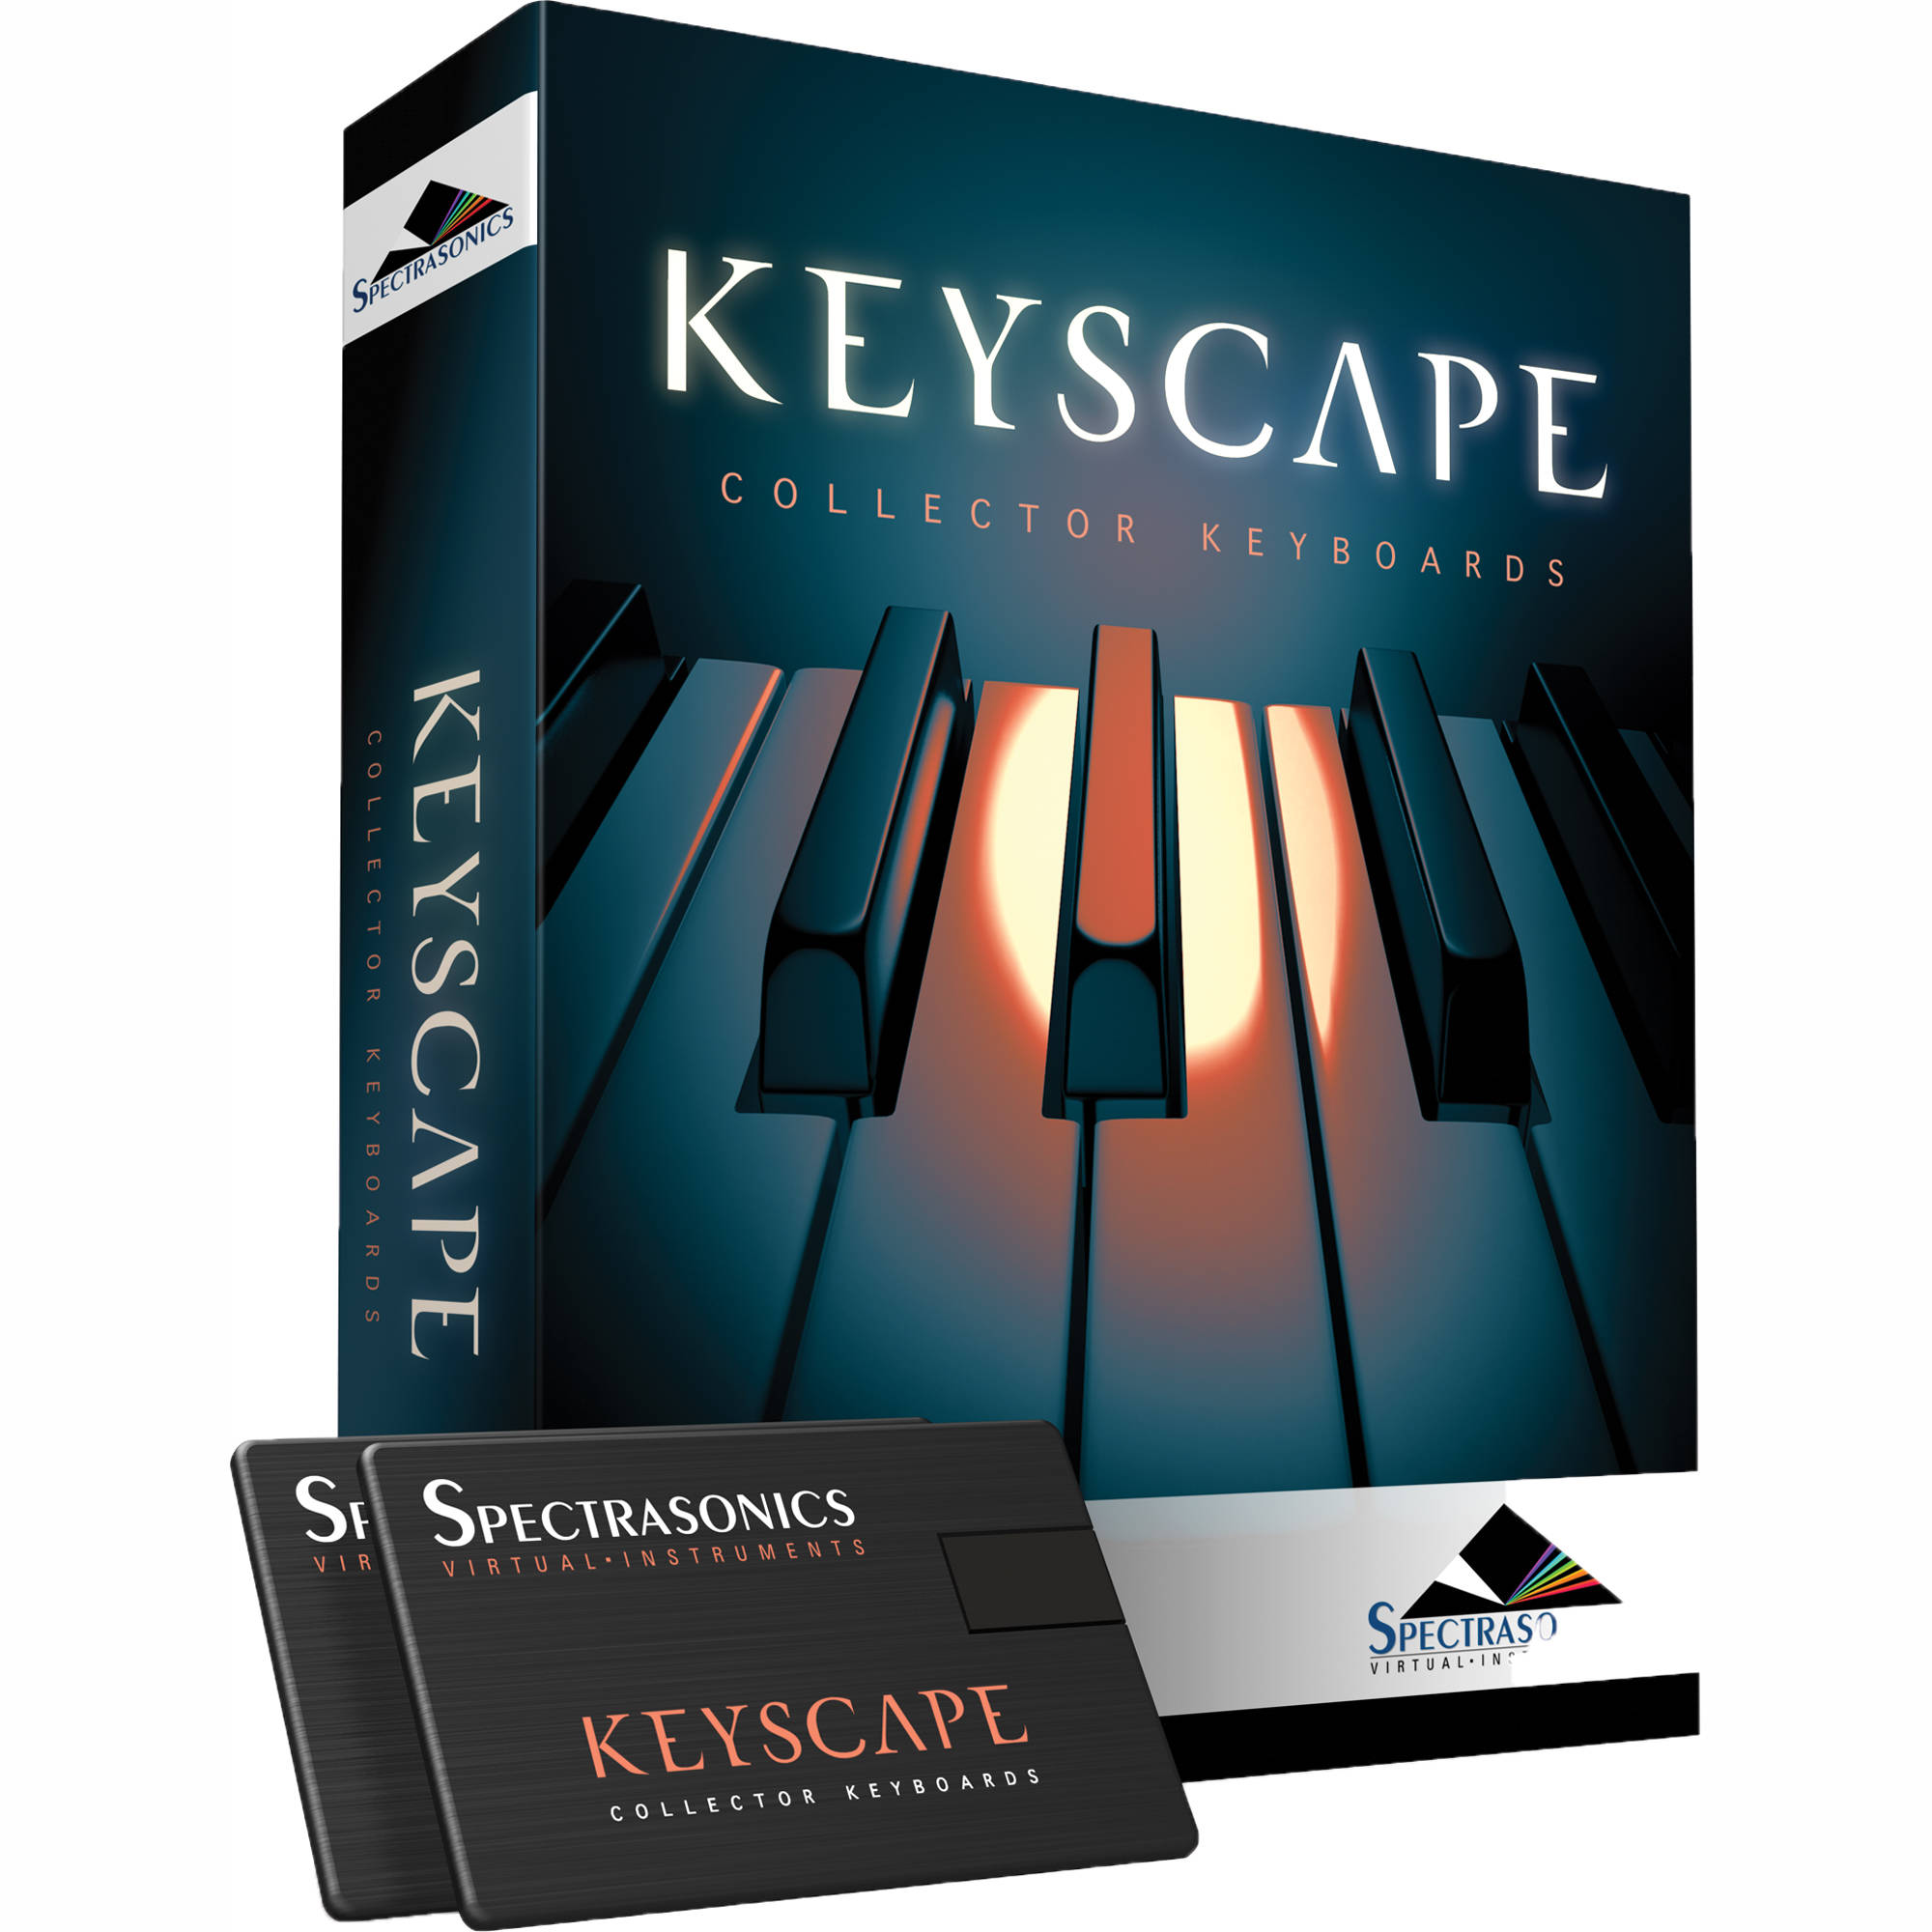 spectrasonics and television.html